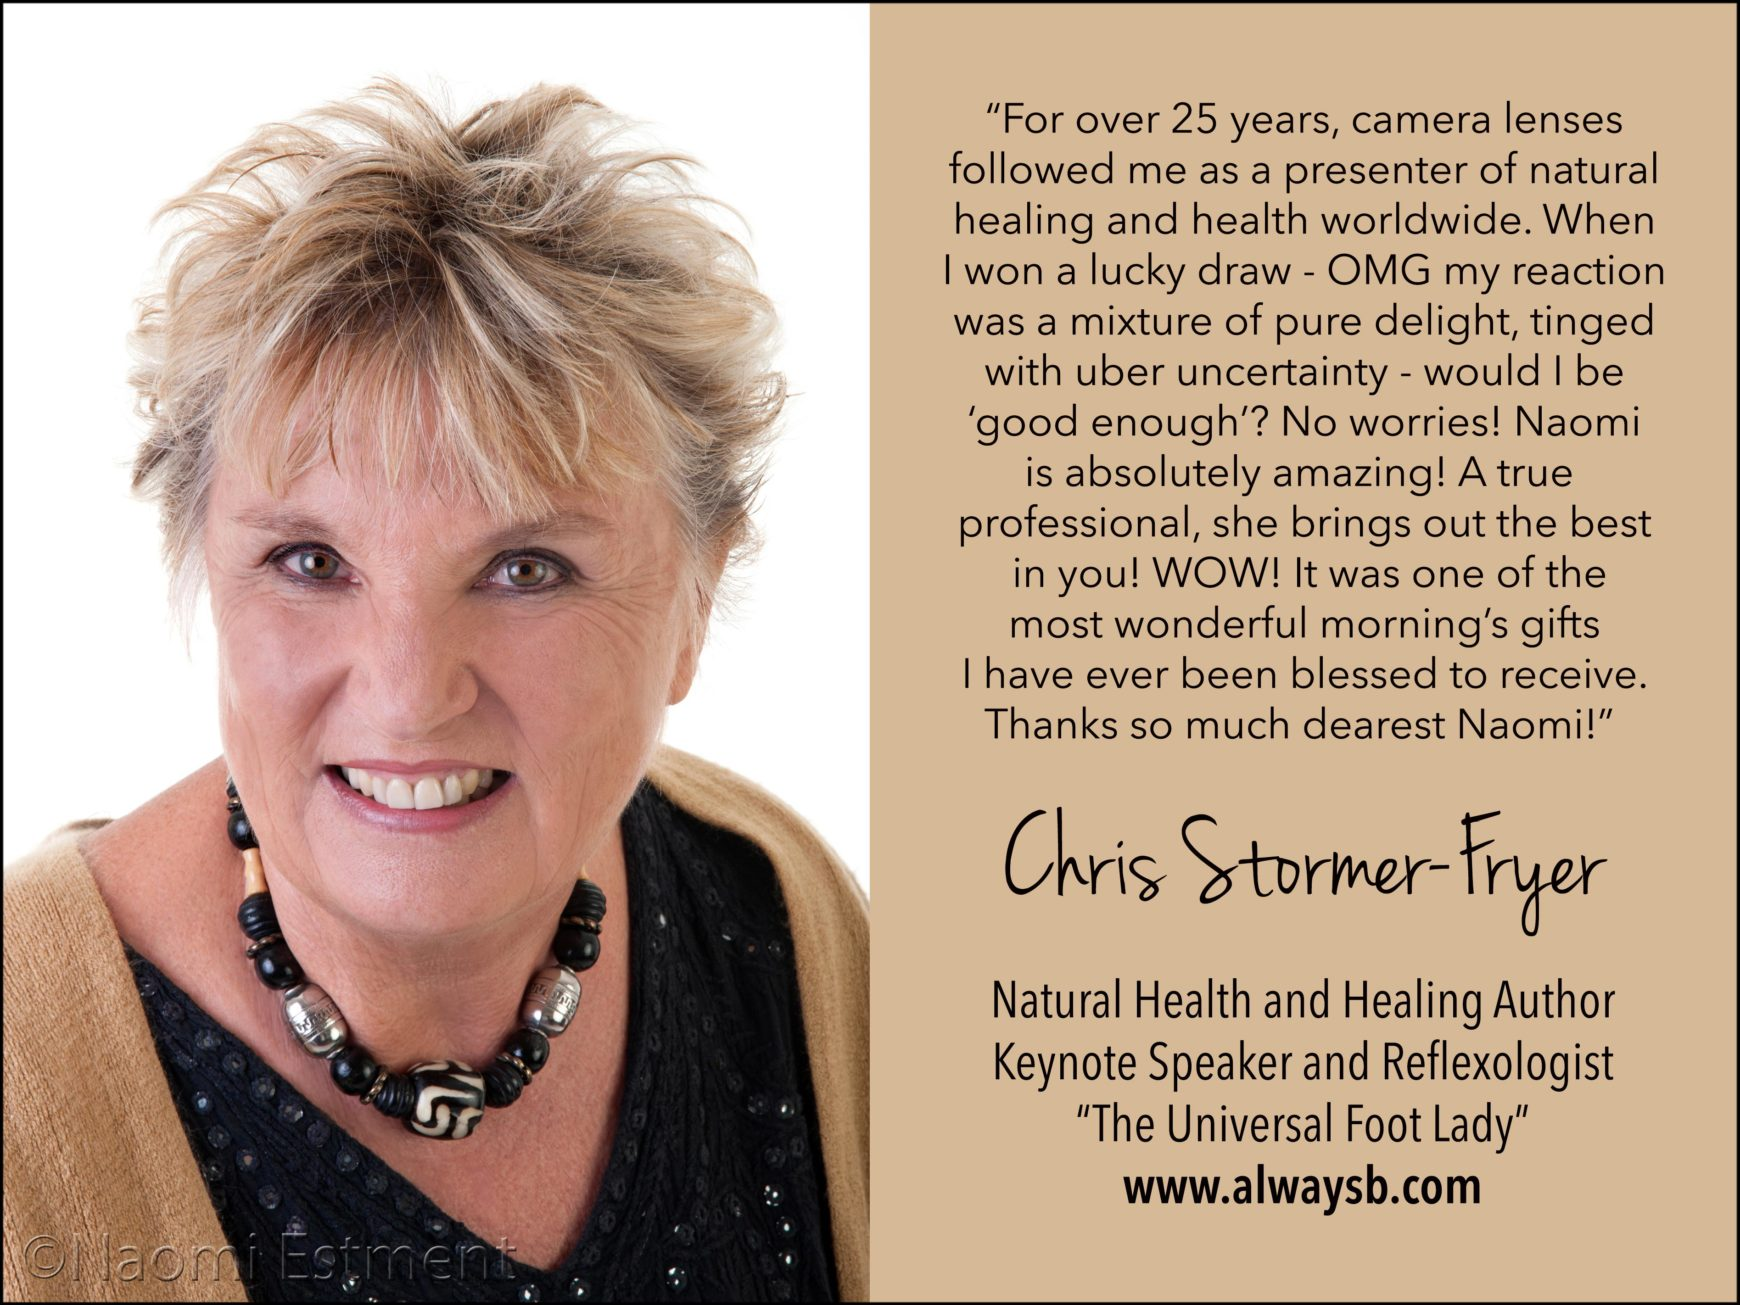 Chris Stormer-Fryer Testimonial for Naomi Estment